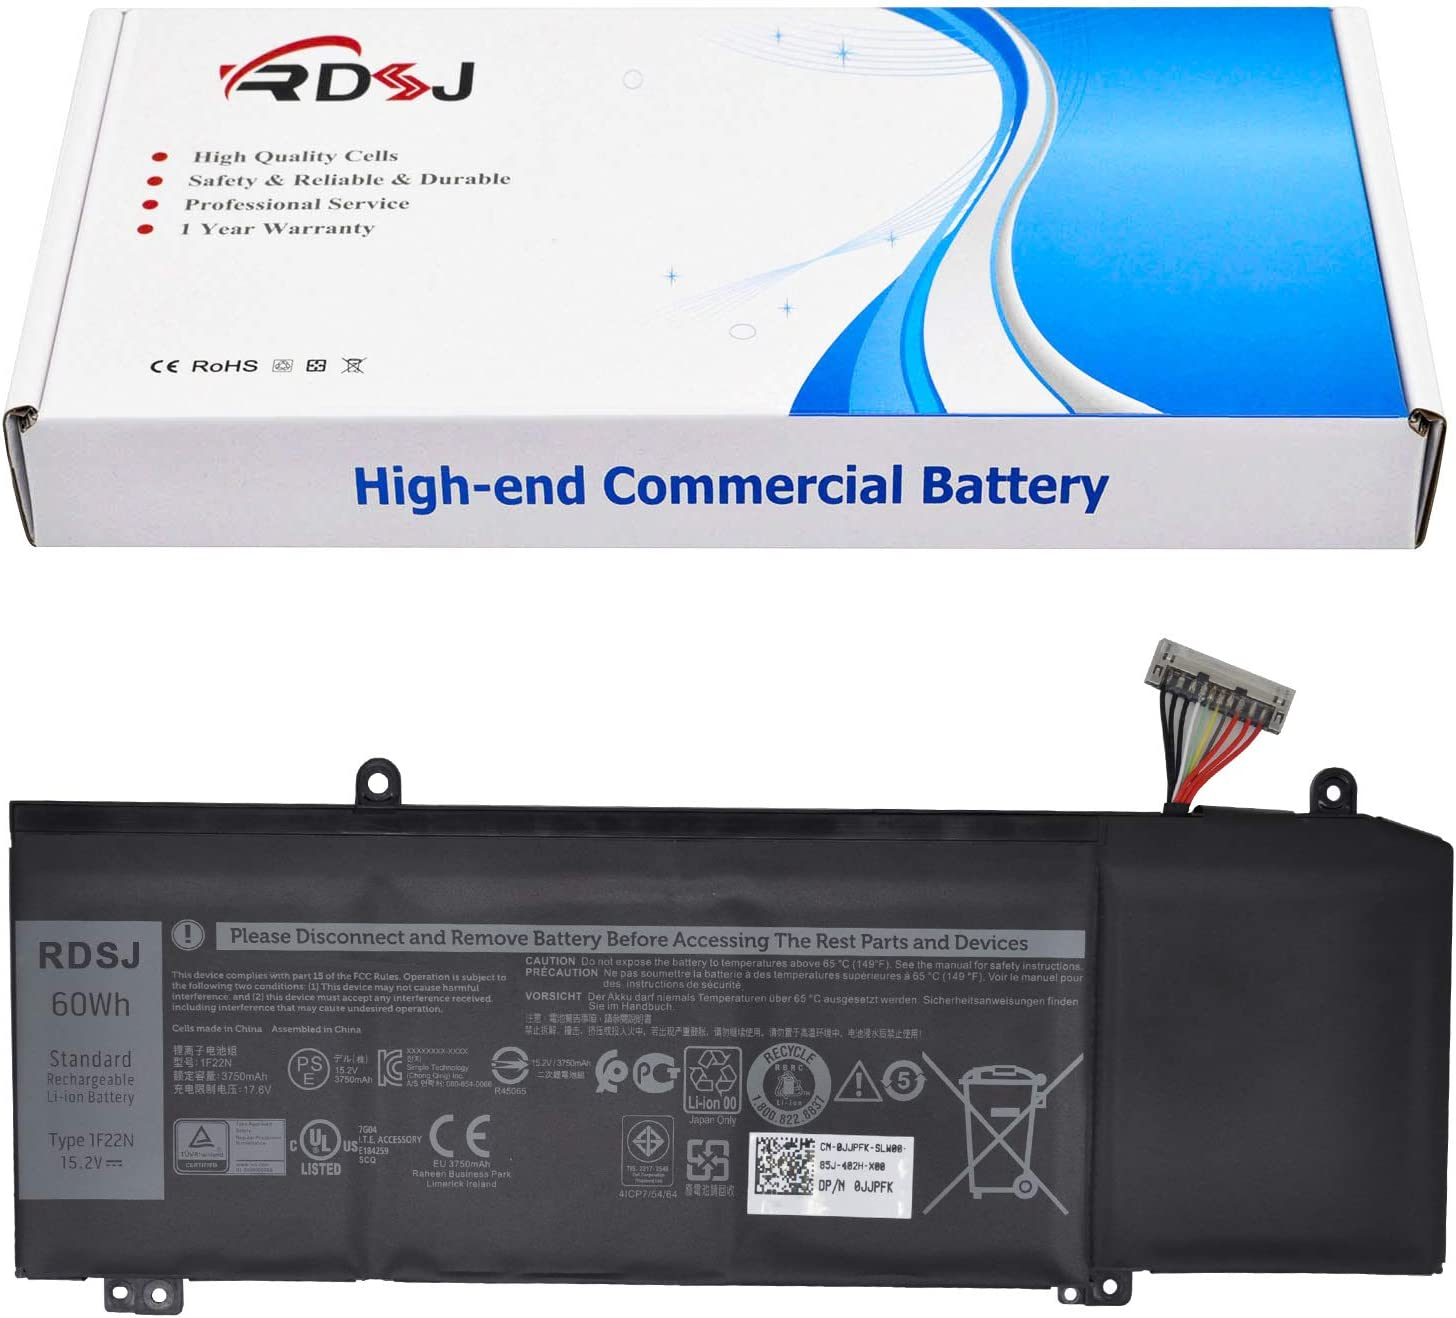 1F22N Laptop Battery for Dell Alienware R1 Courier shipping free 7790 M17 Ranking integrated 1st place 7590 G7 M15